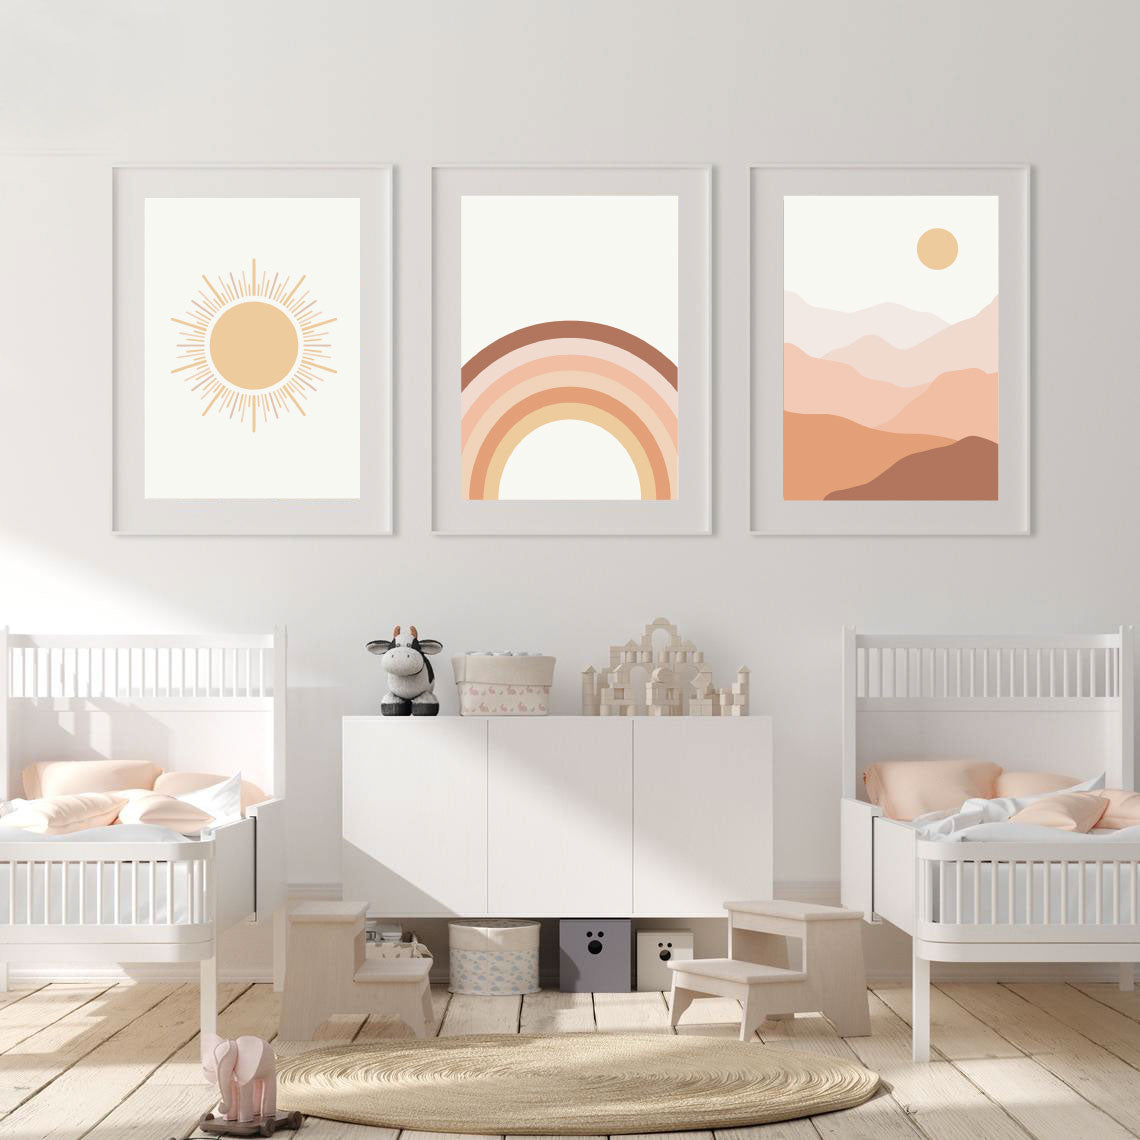 Boho Nursery Trio Prints - Set of 3